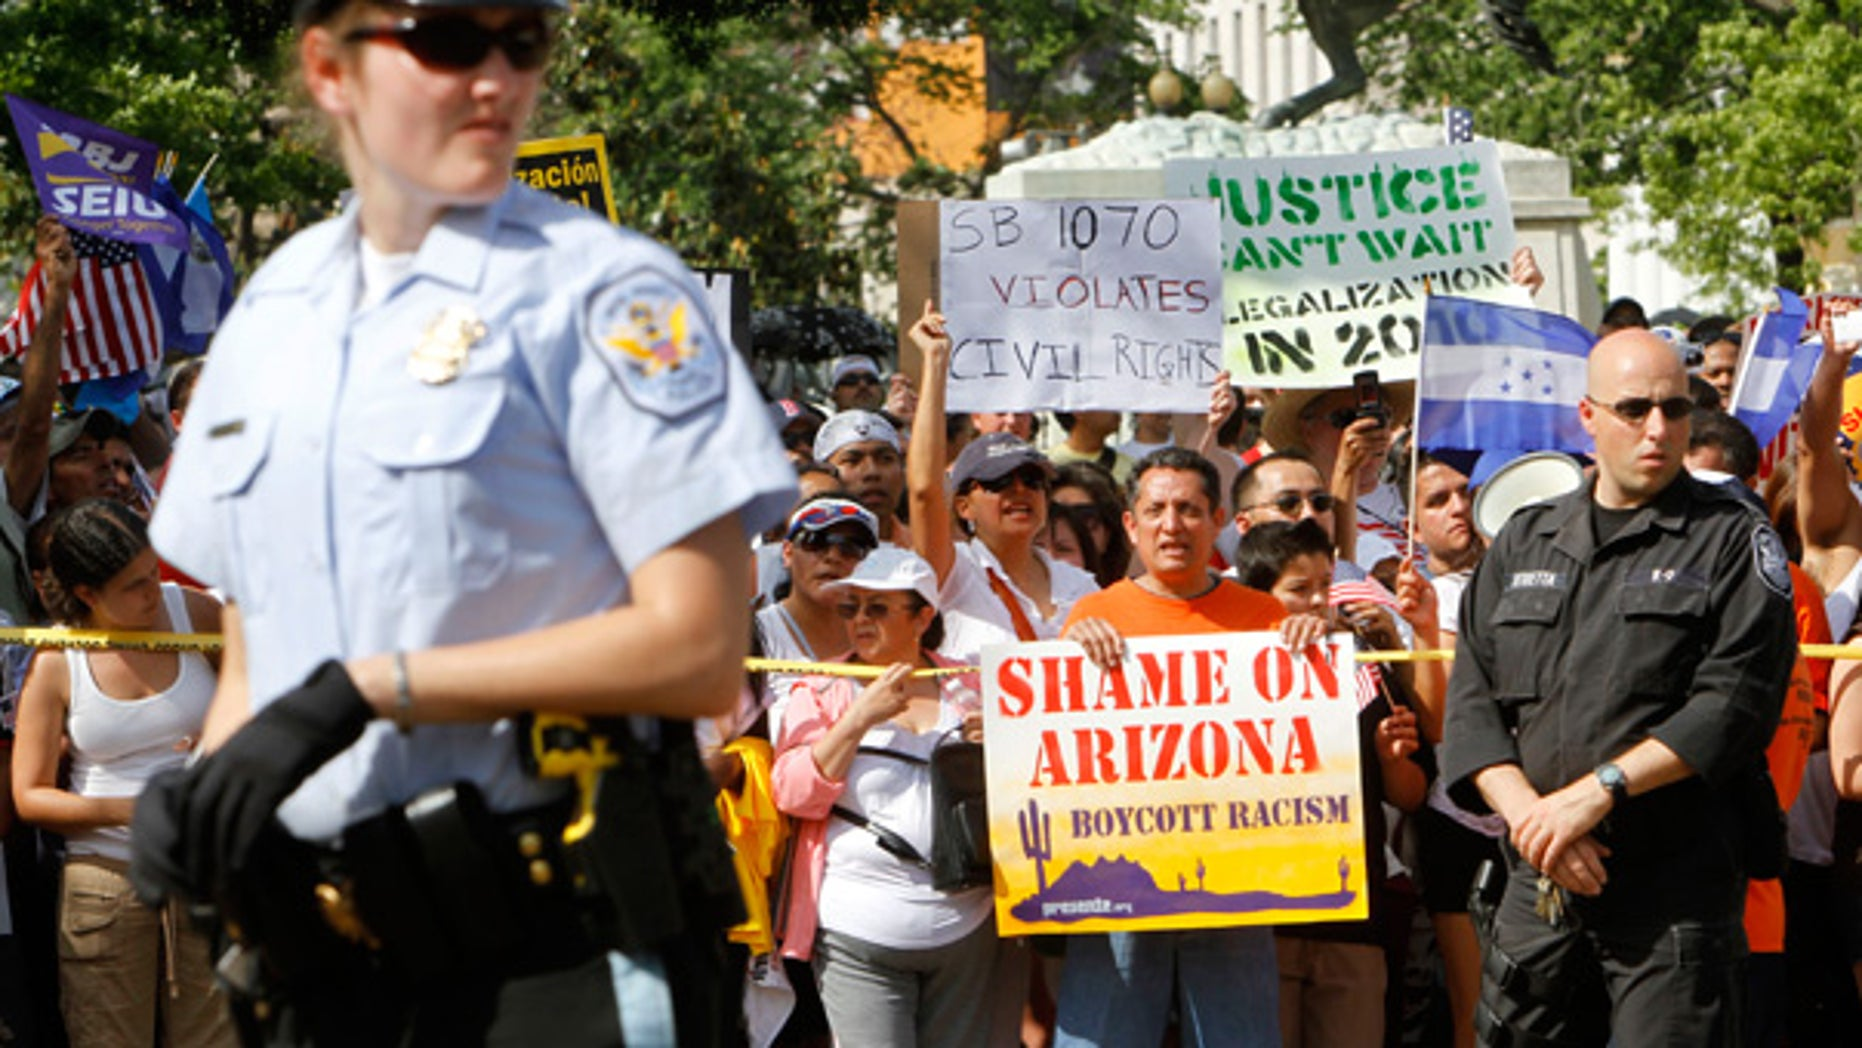 May 1: Protesters hold signs against Arizona's tough new immigration law, near the White House.